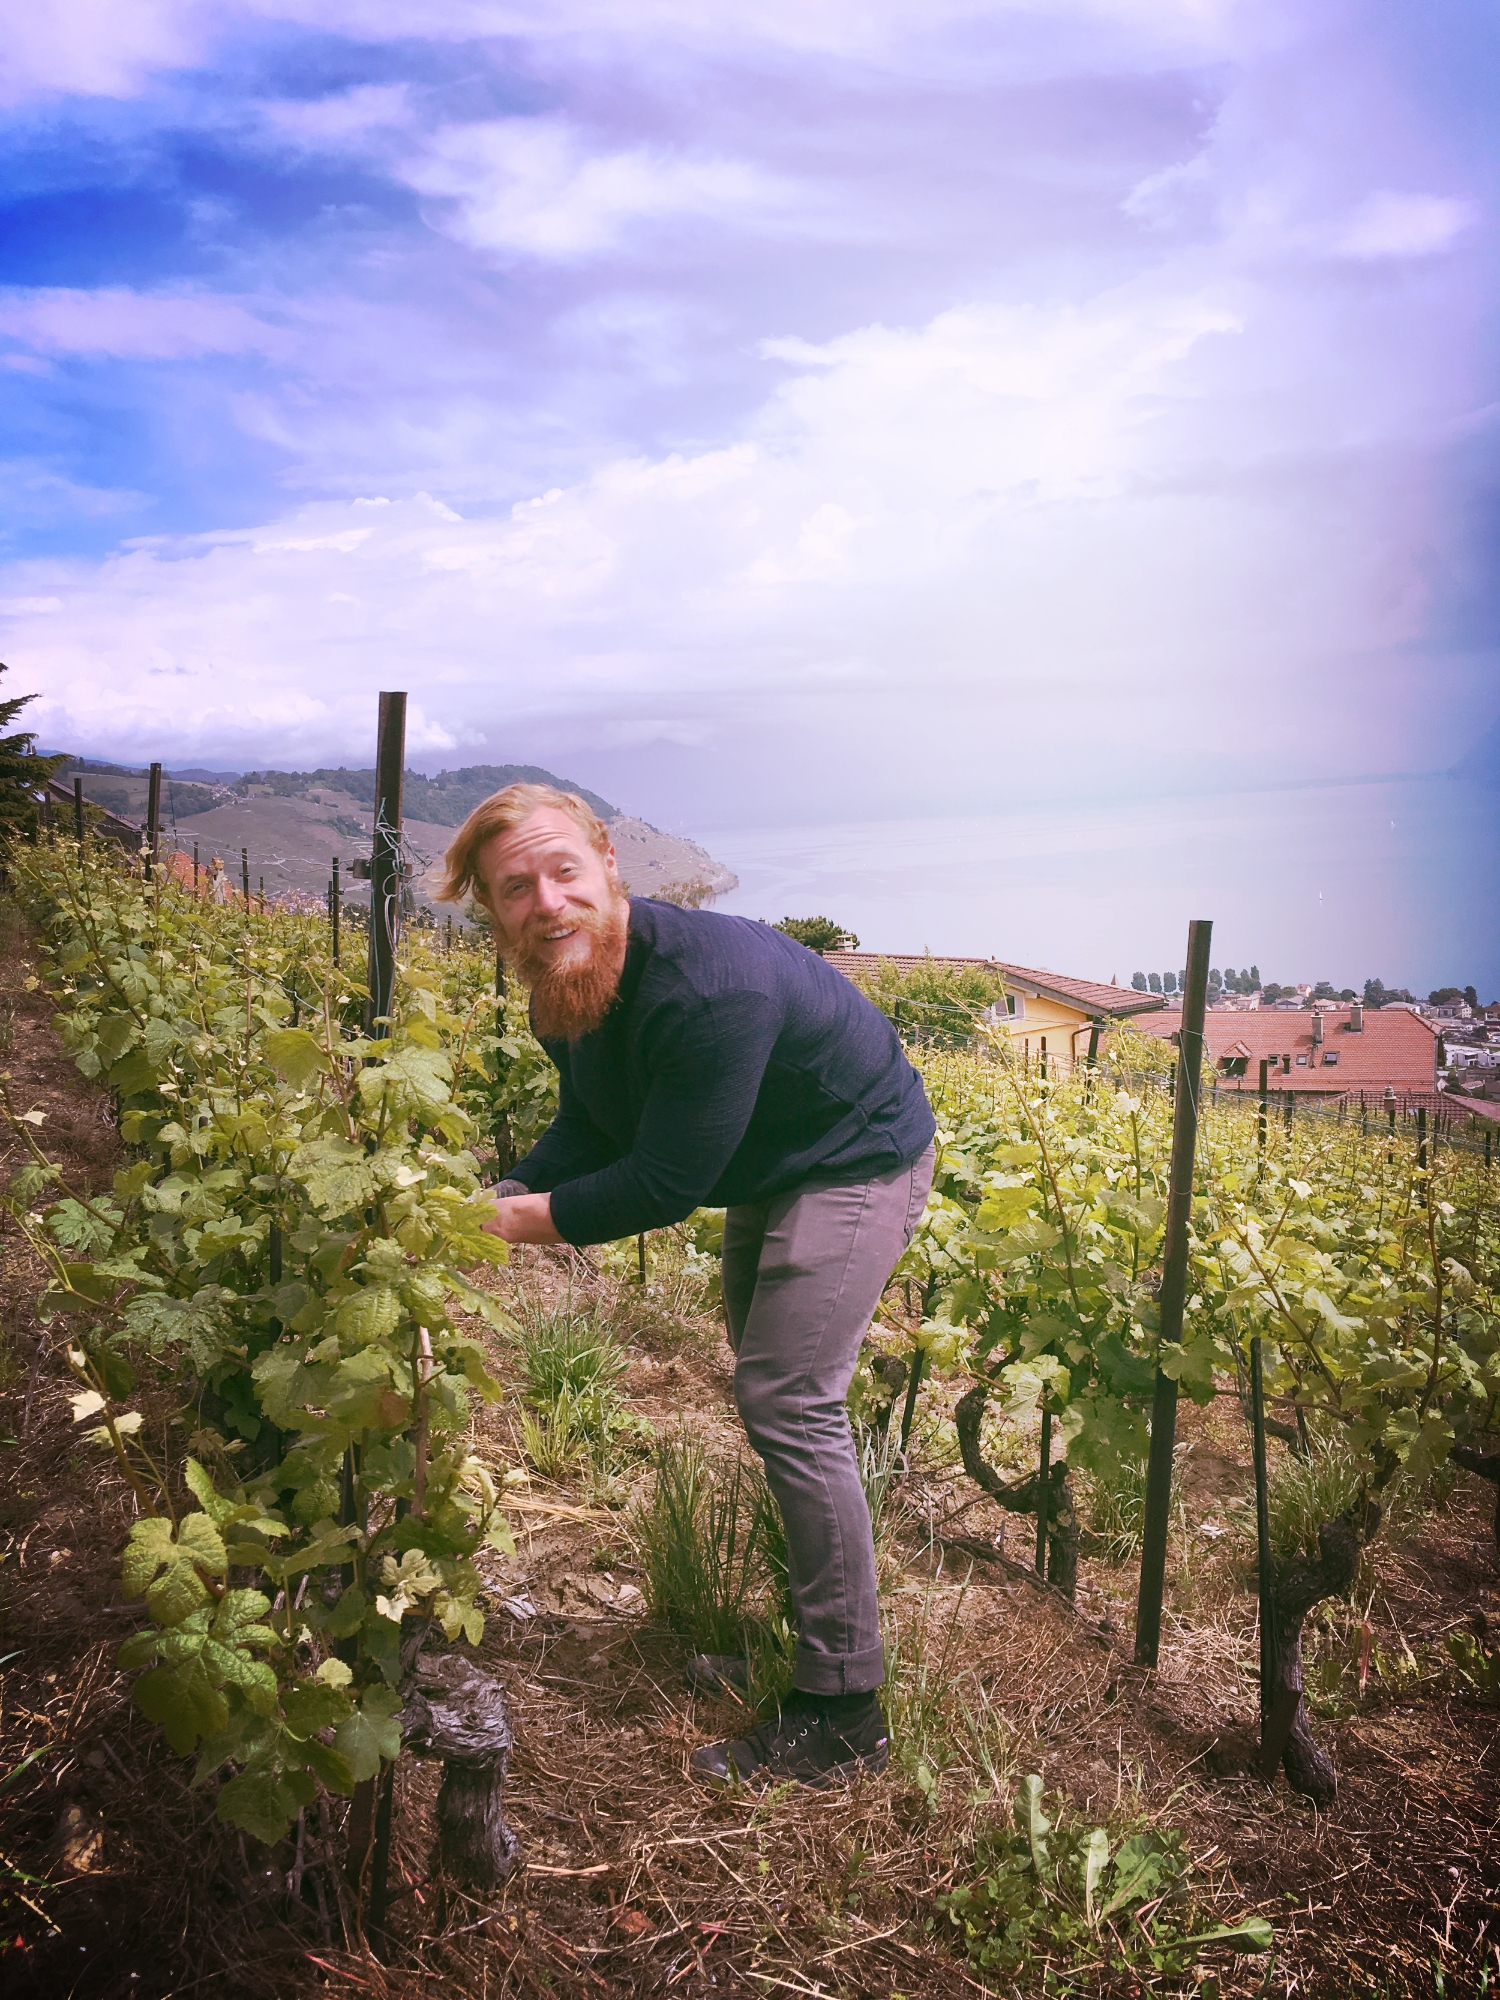 Couldn't help myself from investigating the training methods of the vines!